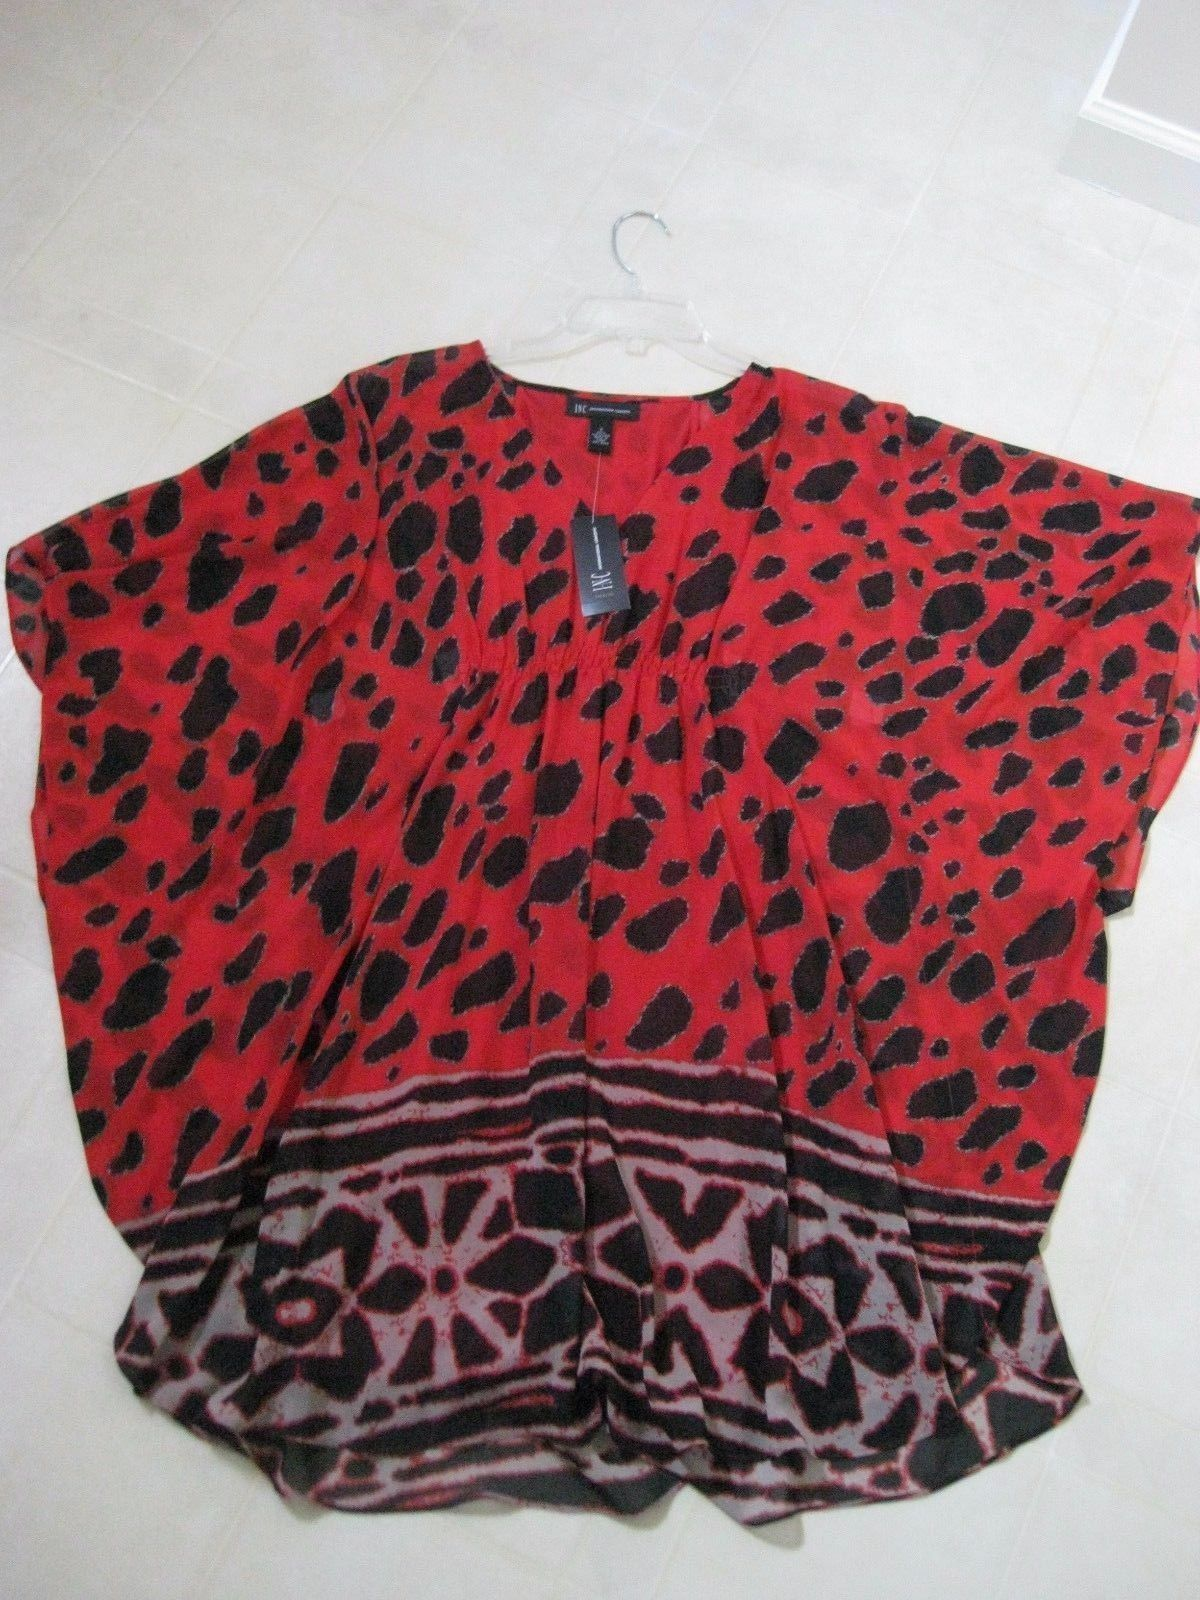 I.N.C International Concepts Dress   Batwing-Dolman Sleeves   Size 2   BNWT